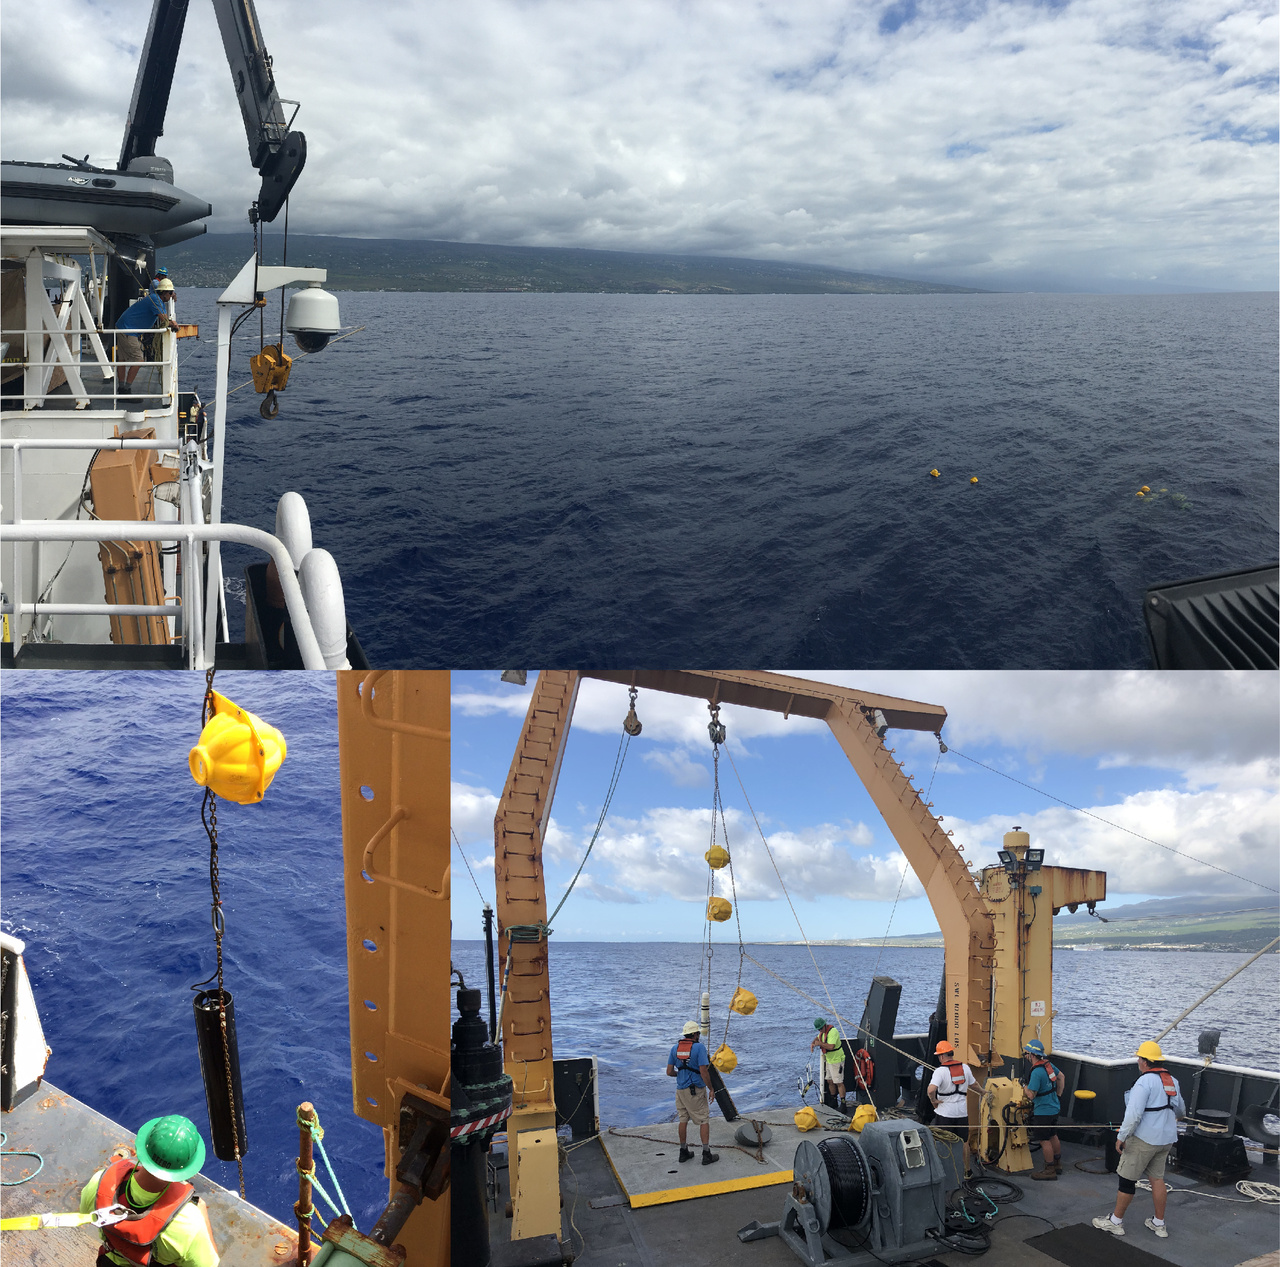 "We maintain a long-term dataset of acoustic recordings collected from high-frequency acoustic recording packages (HARPs) from 13 different sites around the world. One site includes a HARP located offshore from Kona, Big Island. Today, the acoustics team led the effort to (top, left image) recover the ""old"" HARP with data then (right image) redeploy a ""new"" HARP with an empty hard drive to record new acoustic data. Photo: NOAA Fisheries/Marie Hill and Suzanne Yin."